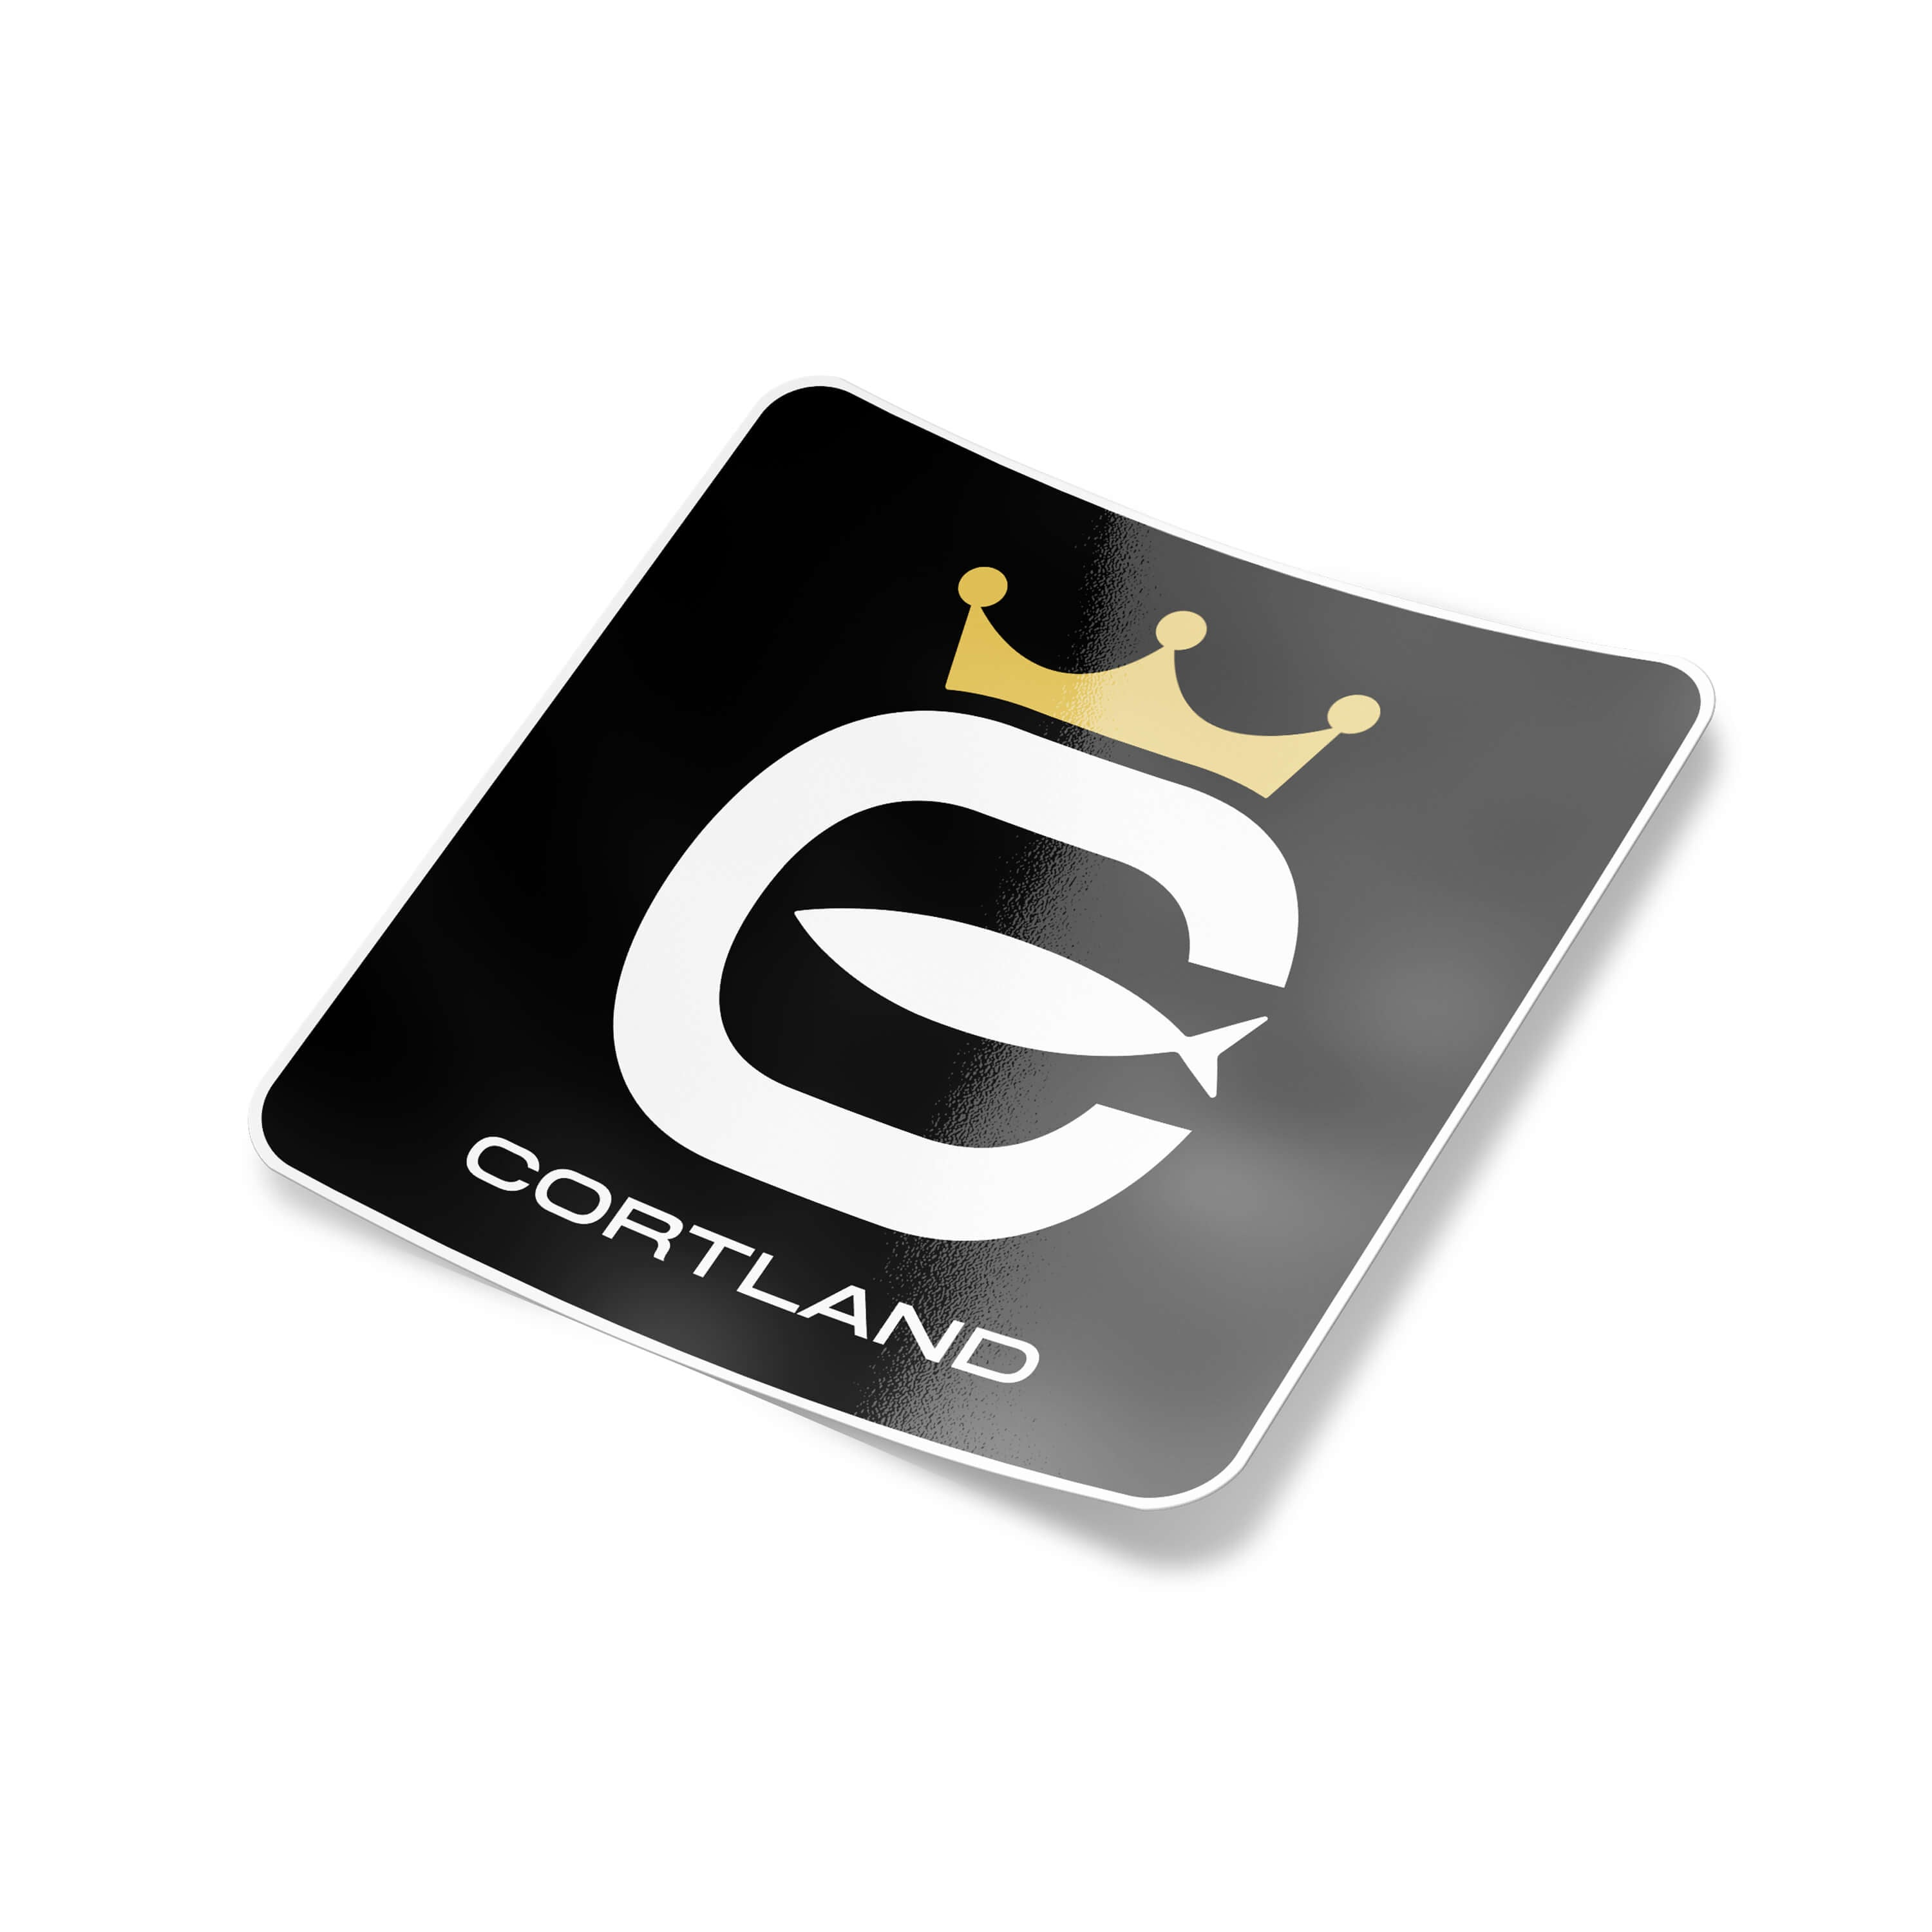 Cortland logo slap sticker big cortland line north america